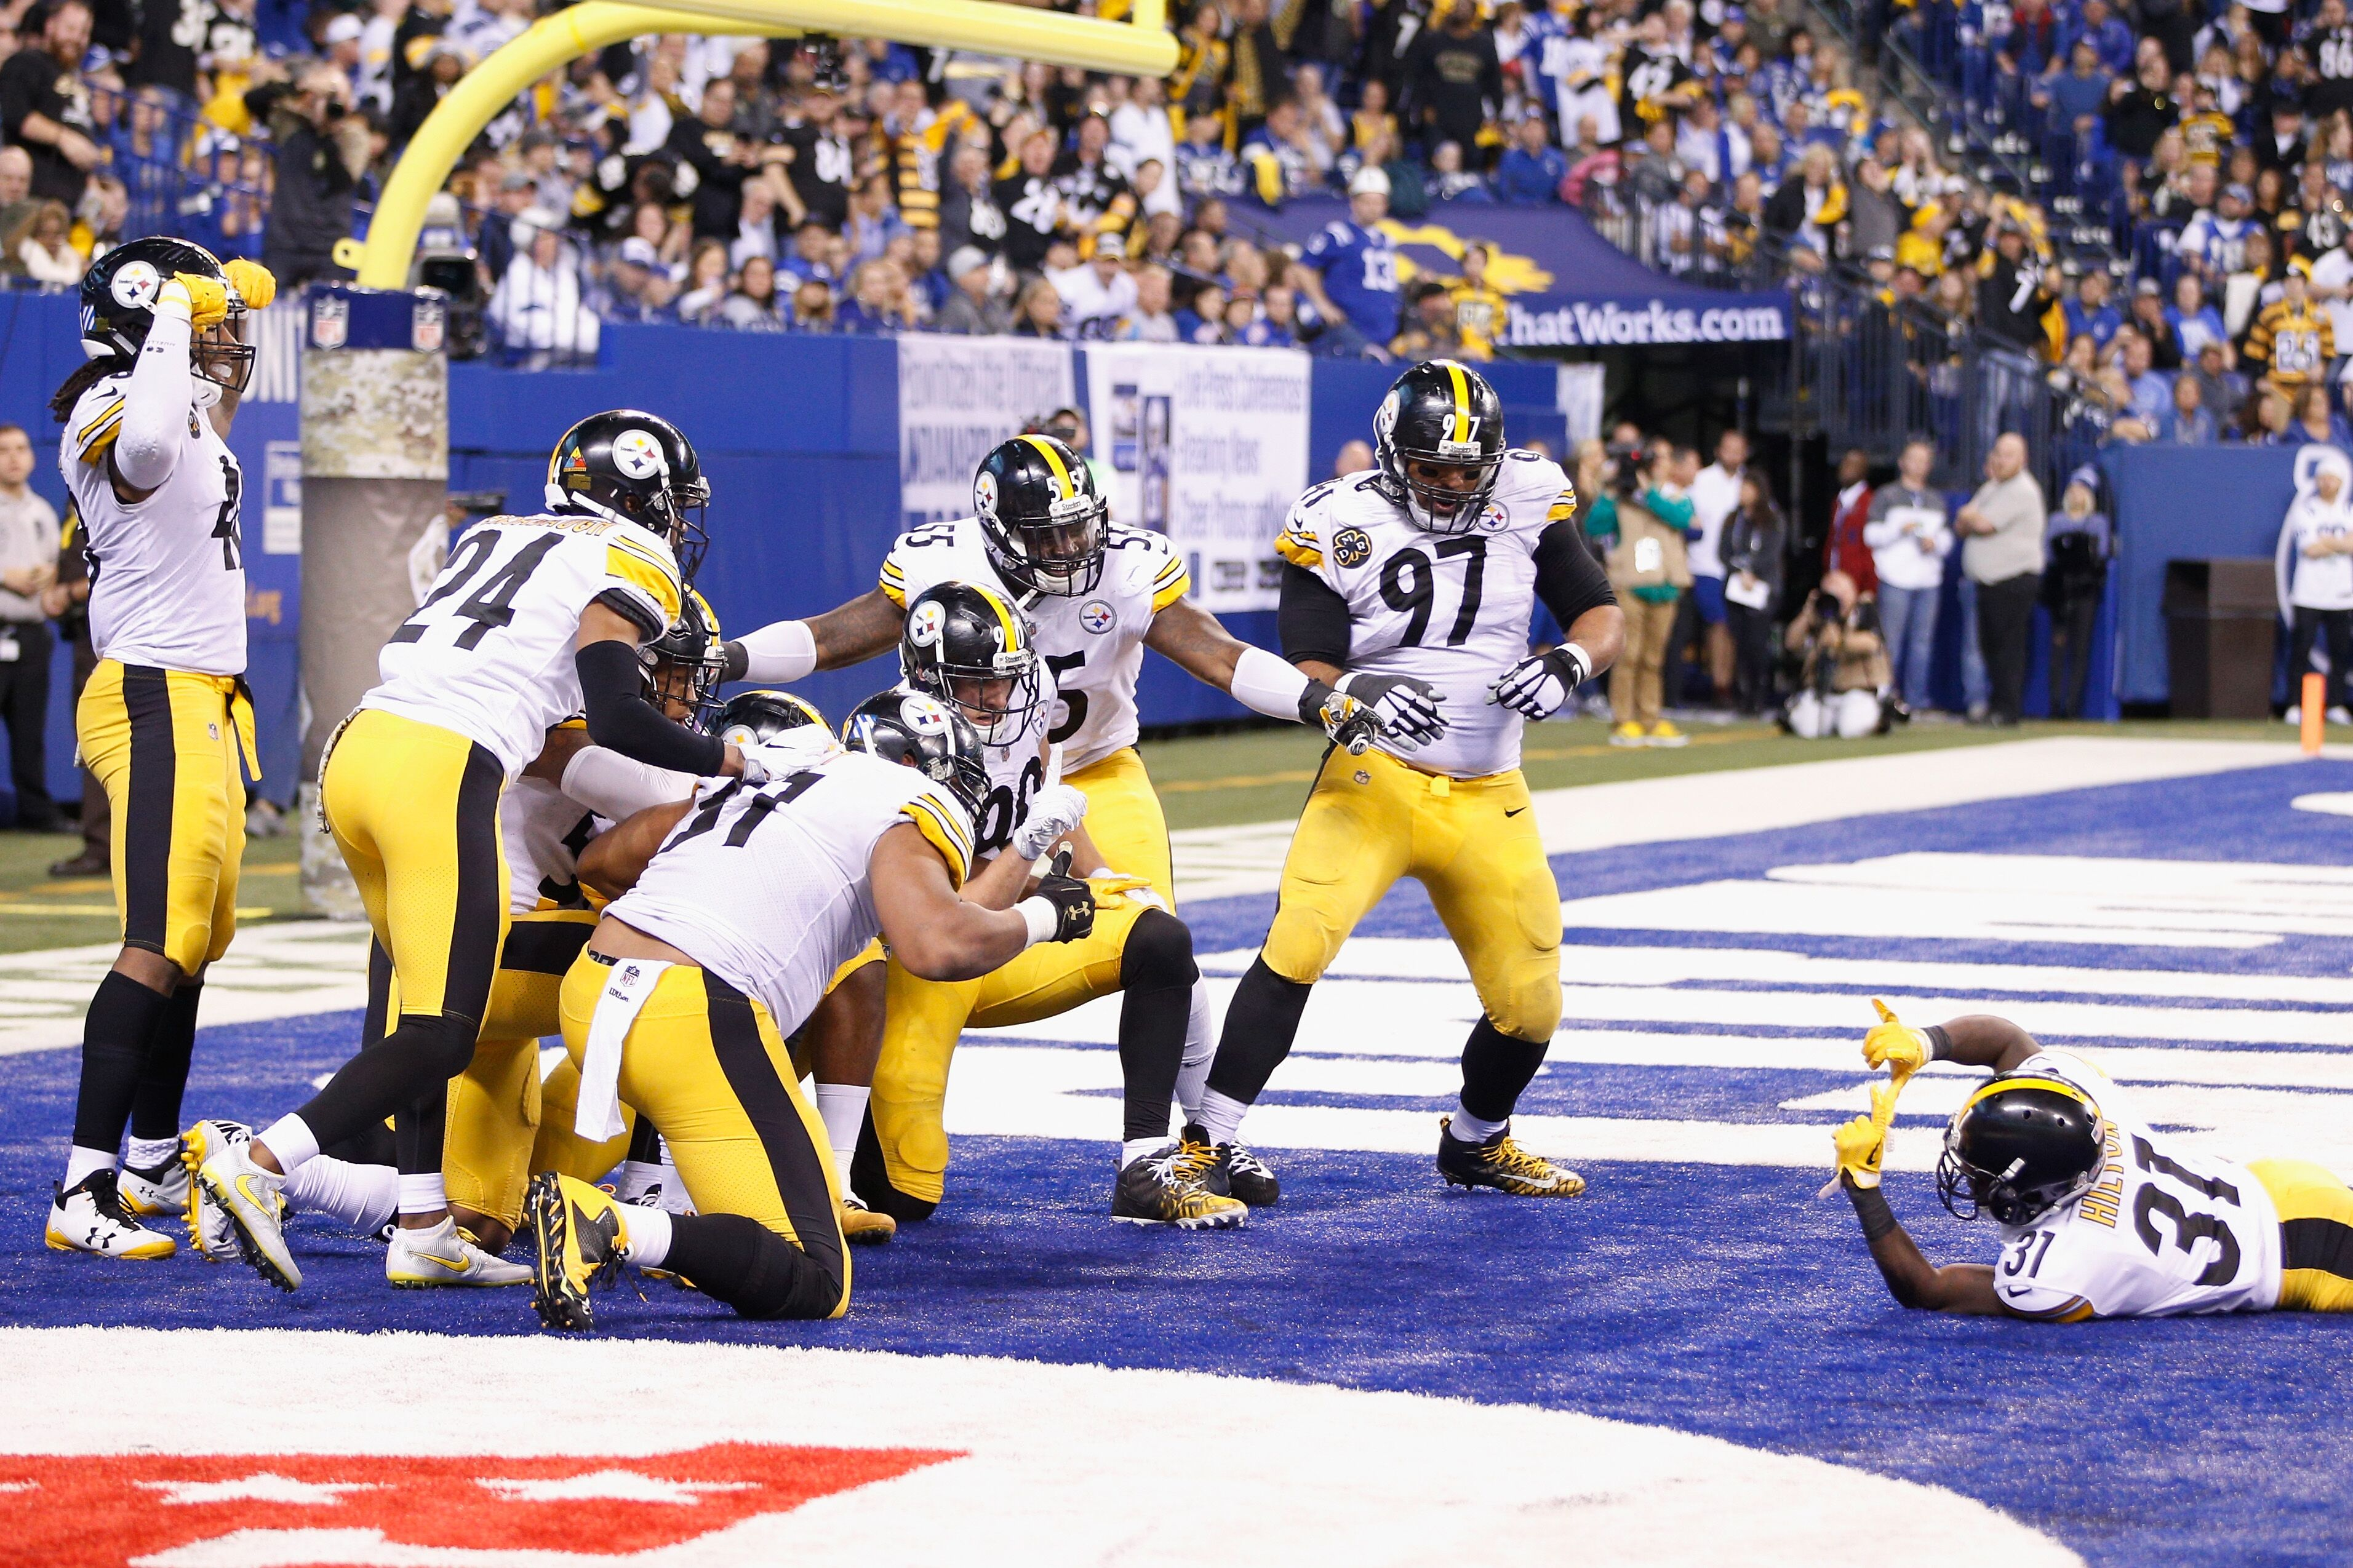 873352000-pittsburgh-steelers-v-indianapolis-colts.jpg